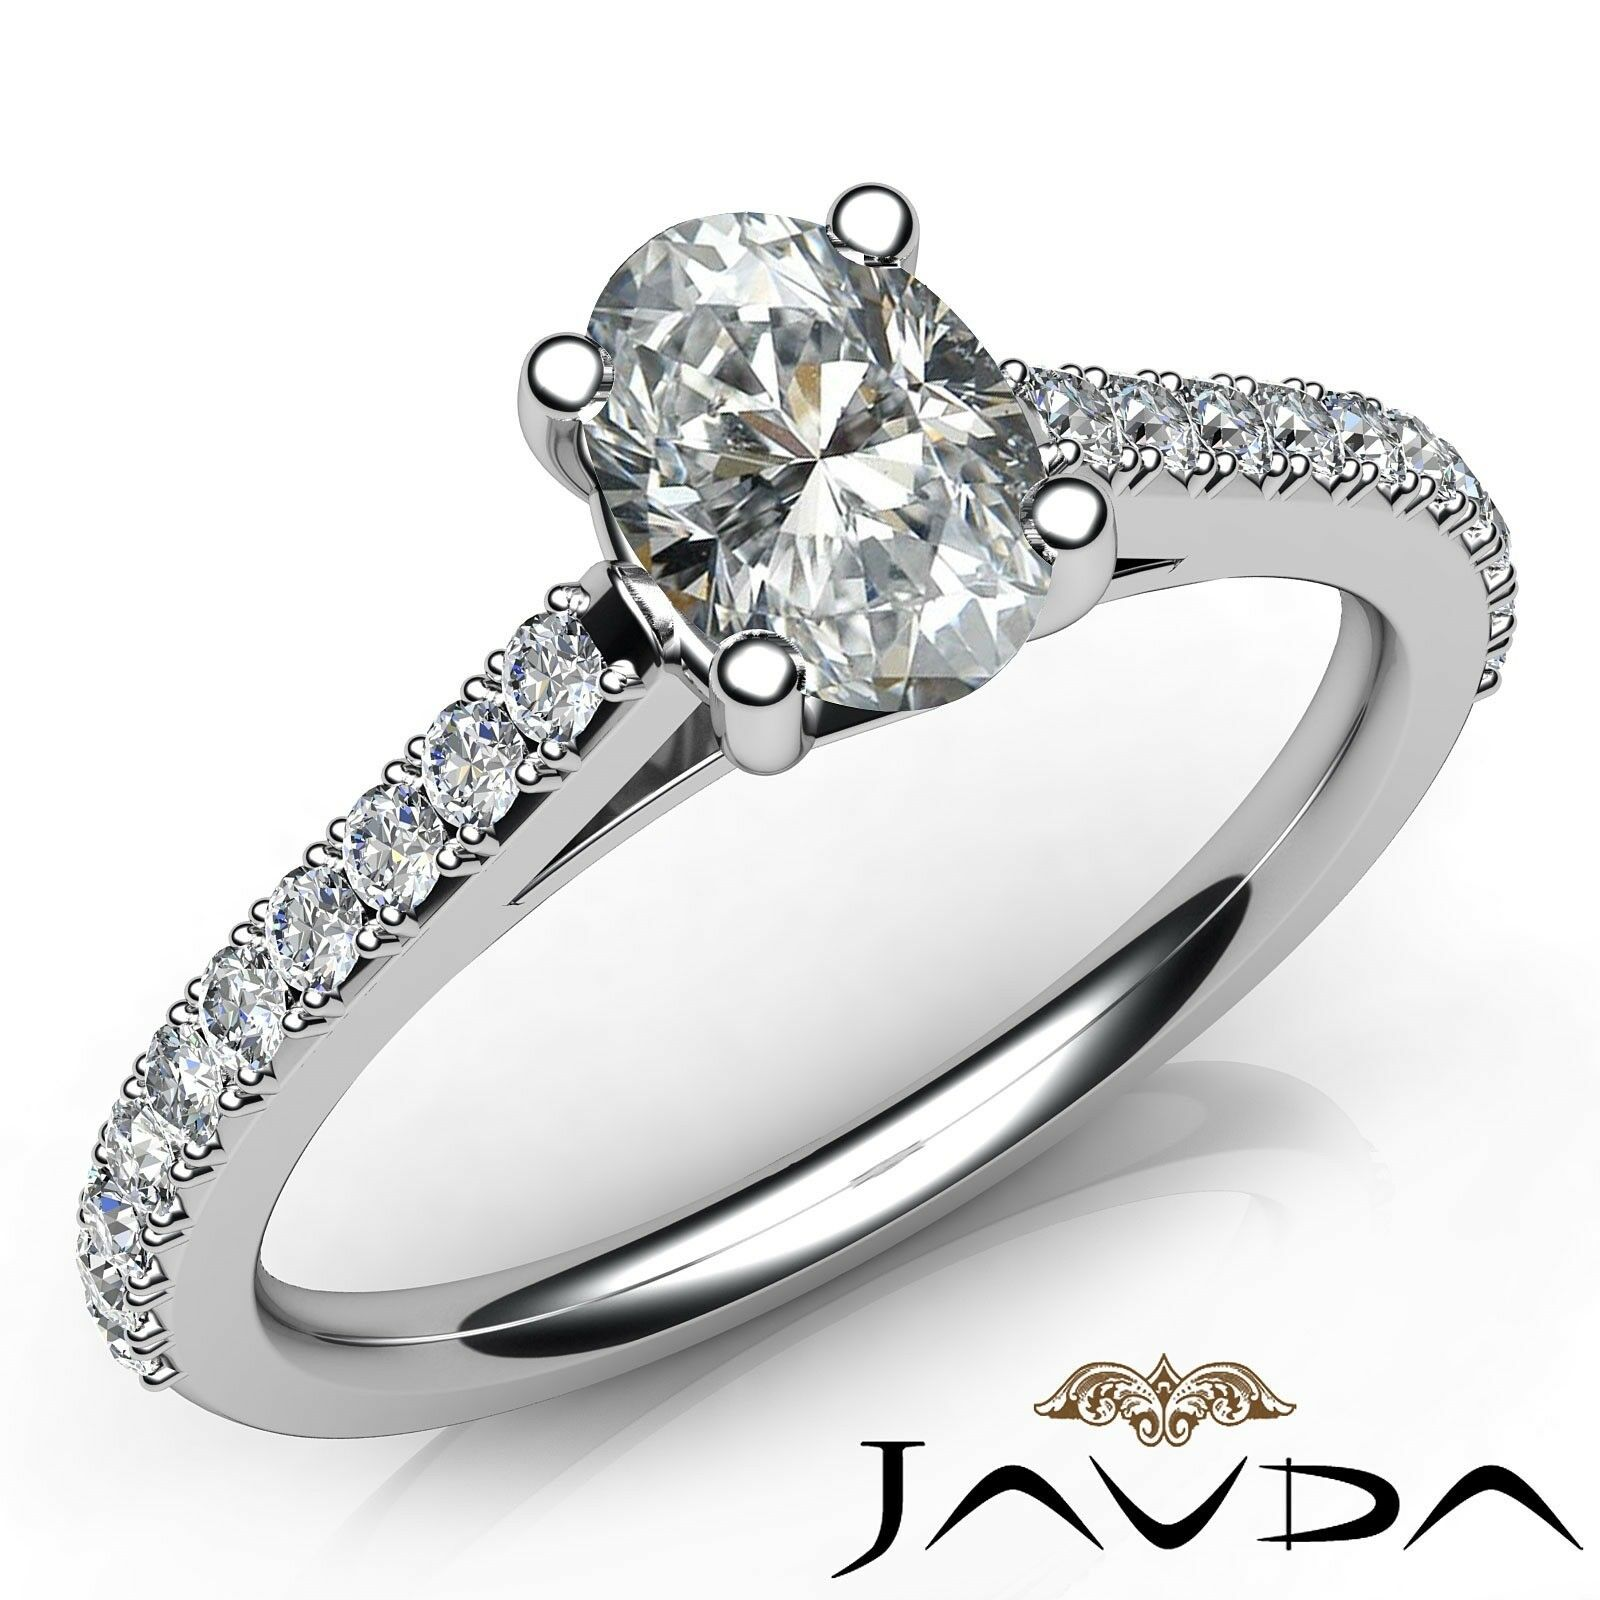 0.8ctw Cathedral Rings Oval Diamond Engagement Ring GIA F-VVS1 White Gold Rings